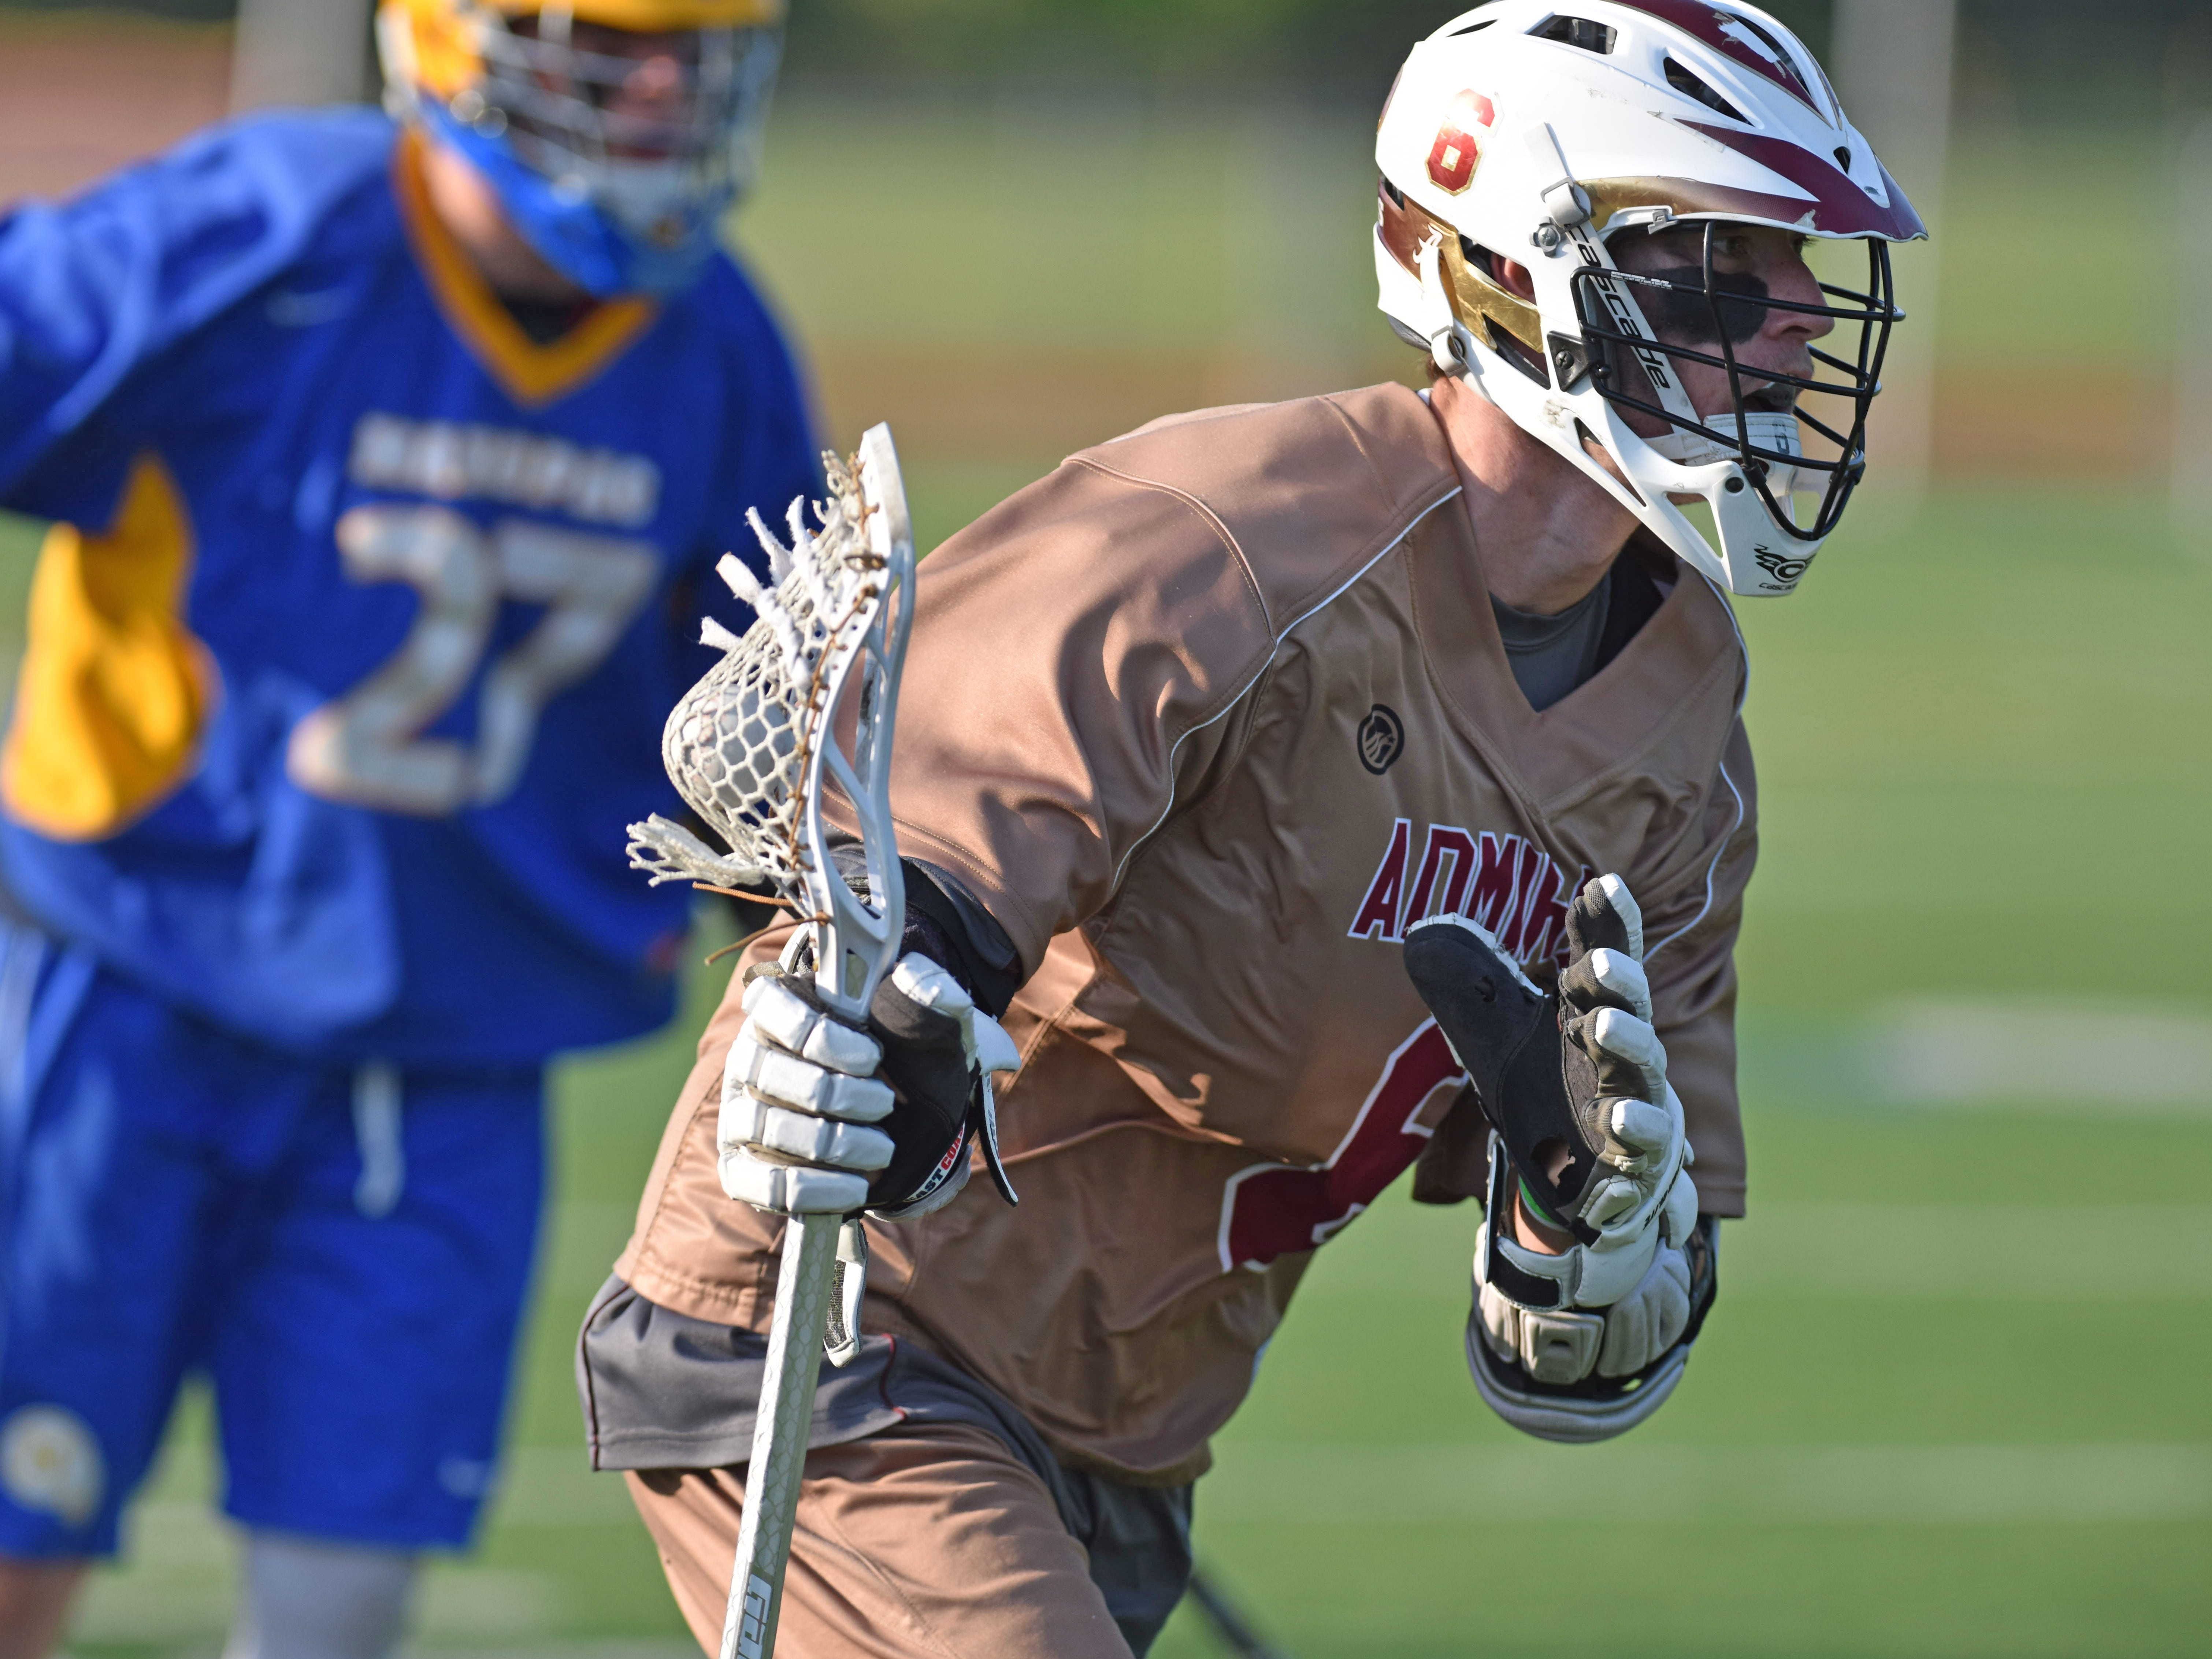 Arlington's Kevin Litchauer carries the ball as Mahopac's Johnnie Ward covers him during Tuesday's game at Arlington on May 19, 2015.